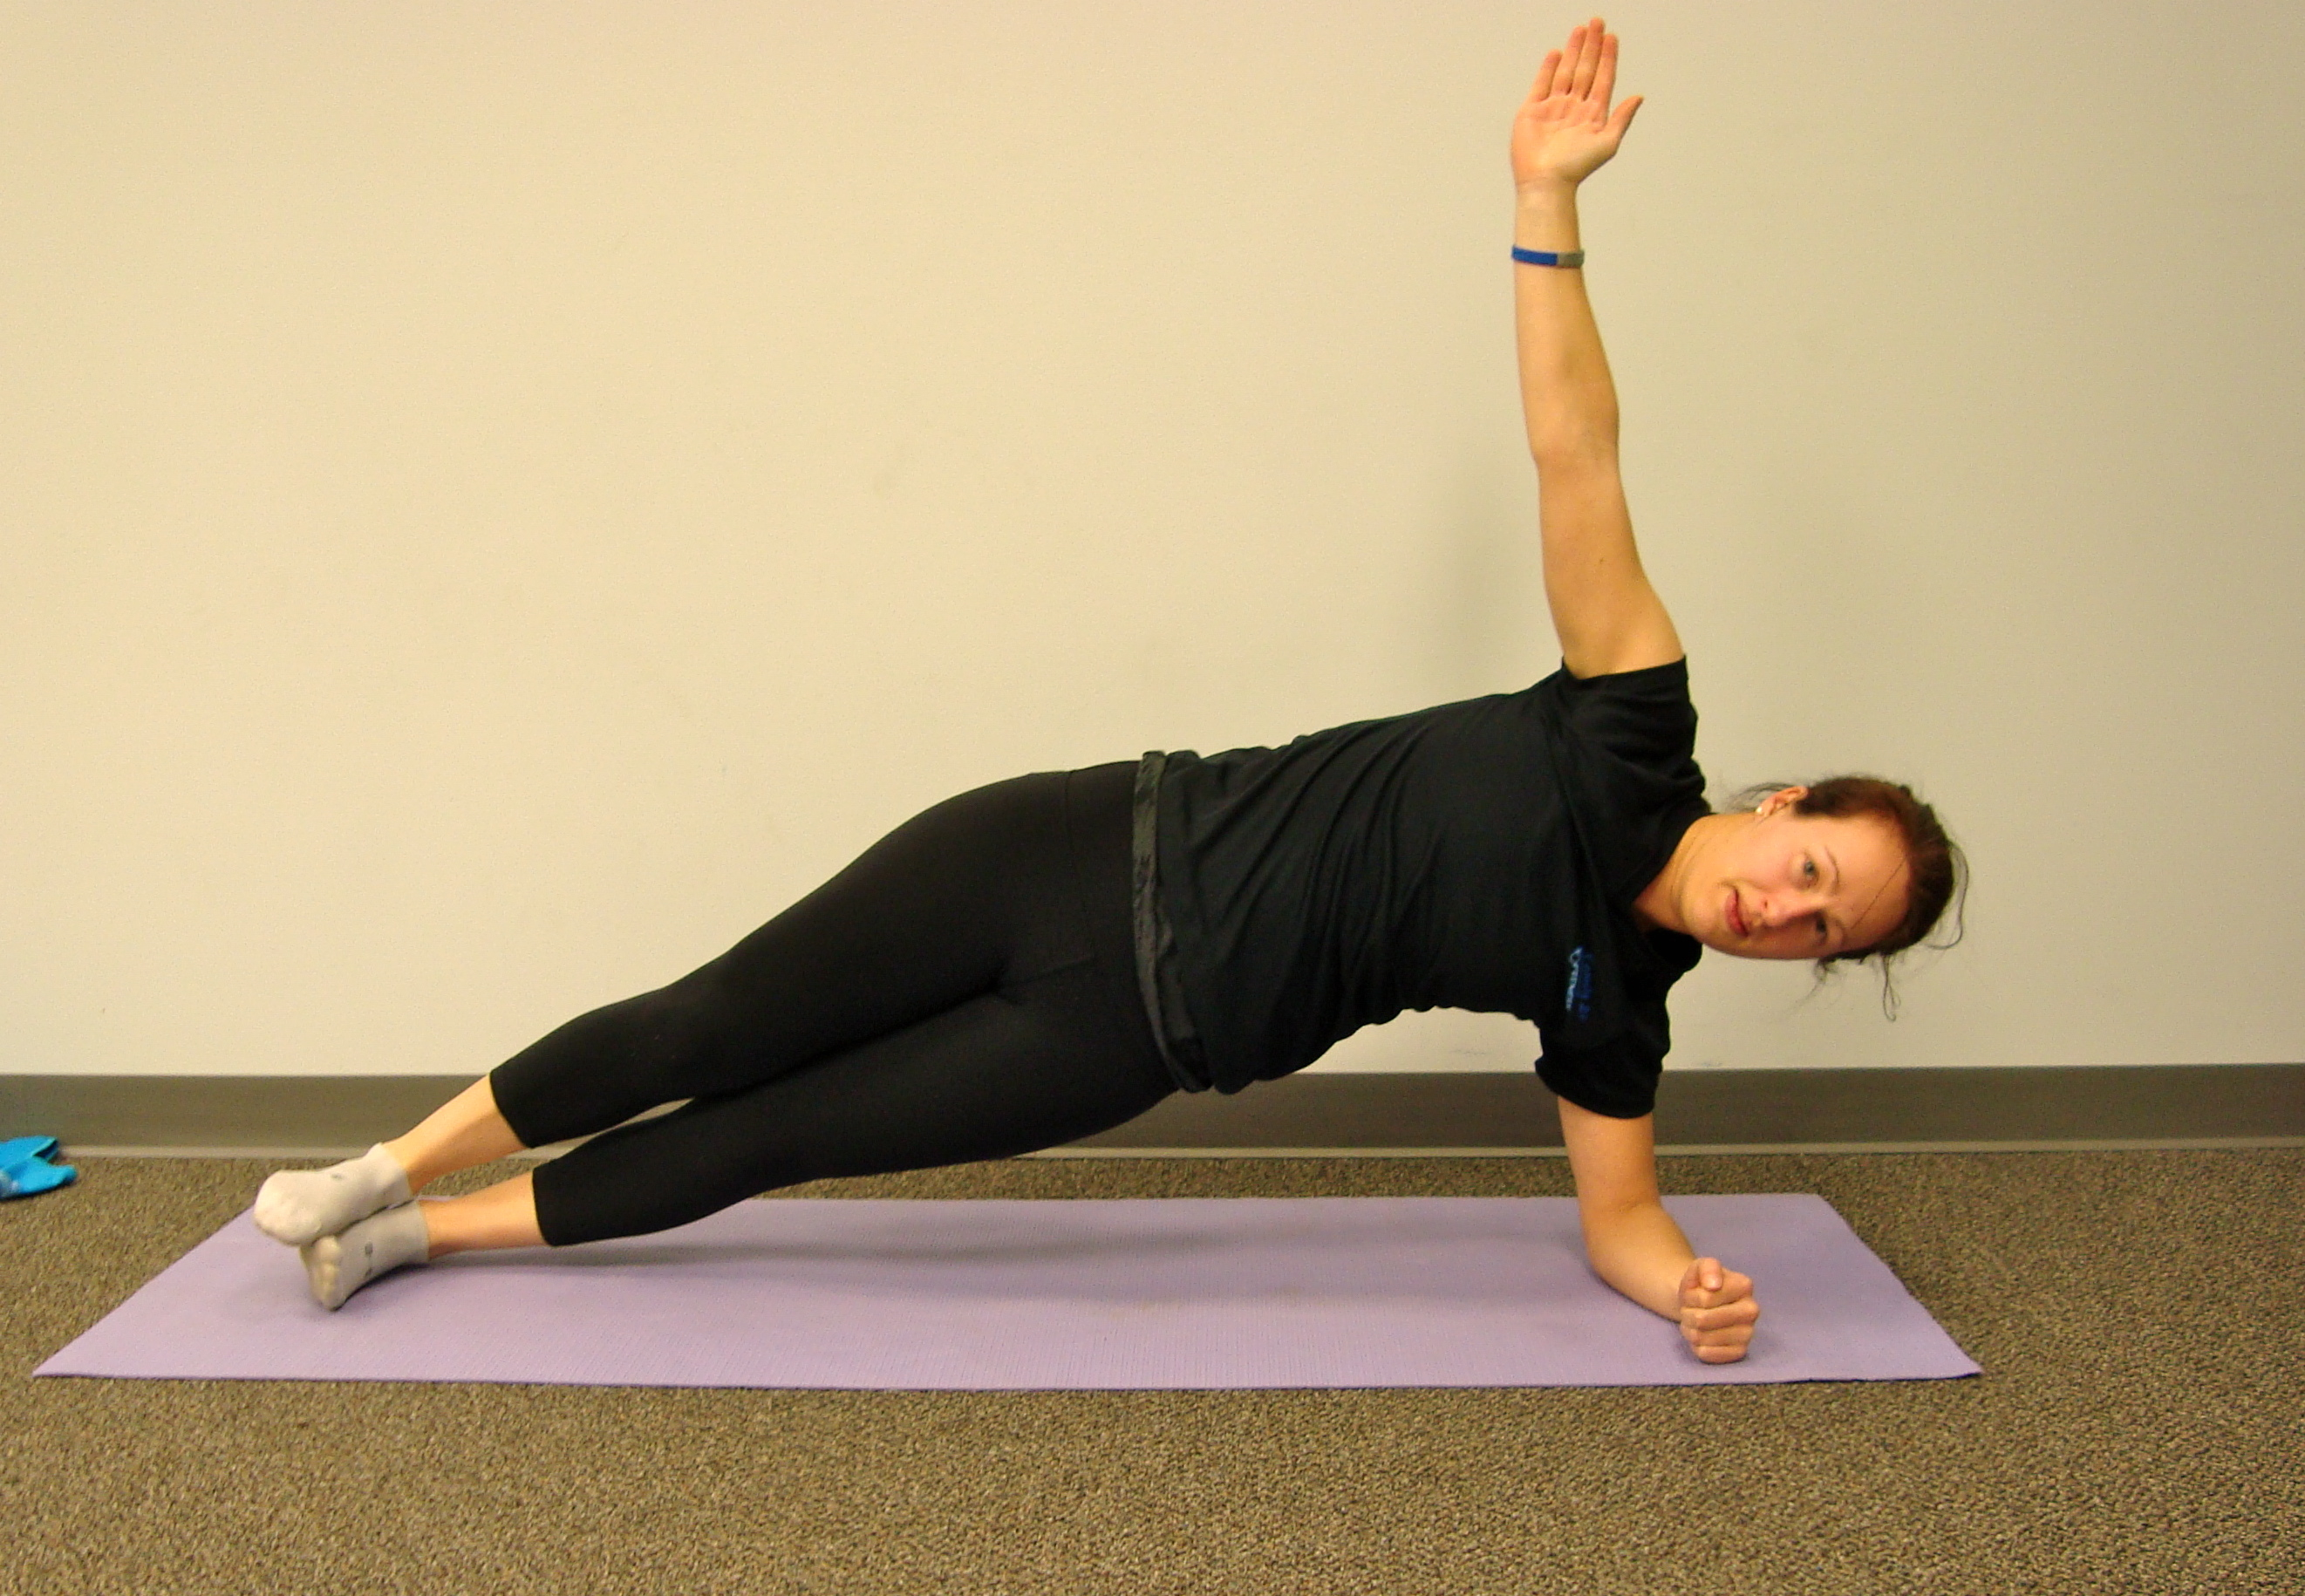 Plank Progression#7: Side Plank - Make sure you keep your hips up